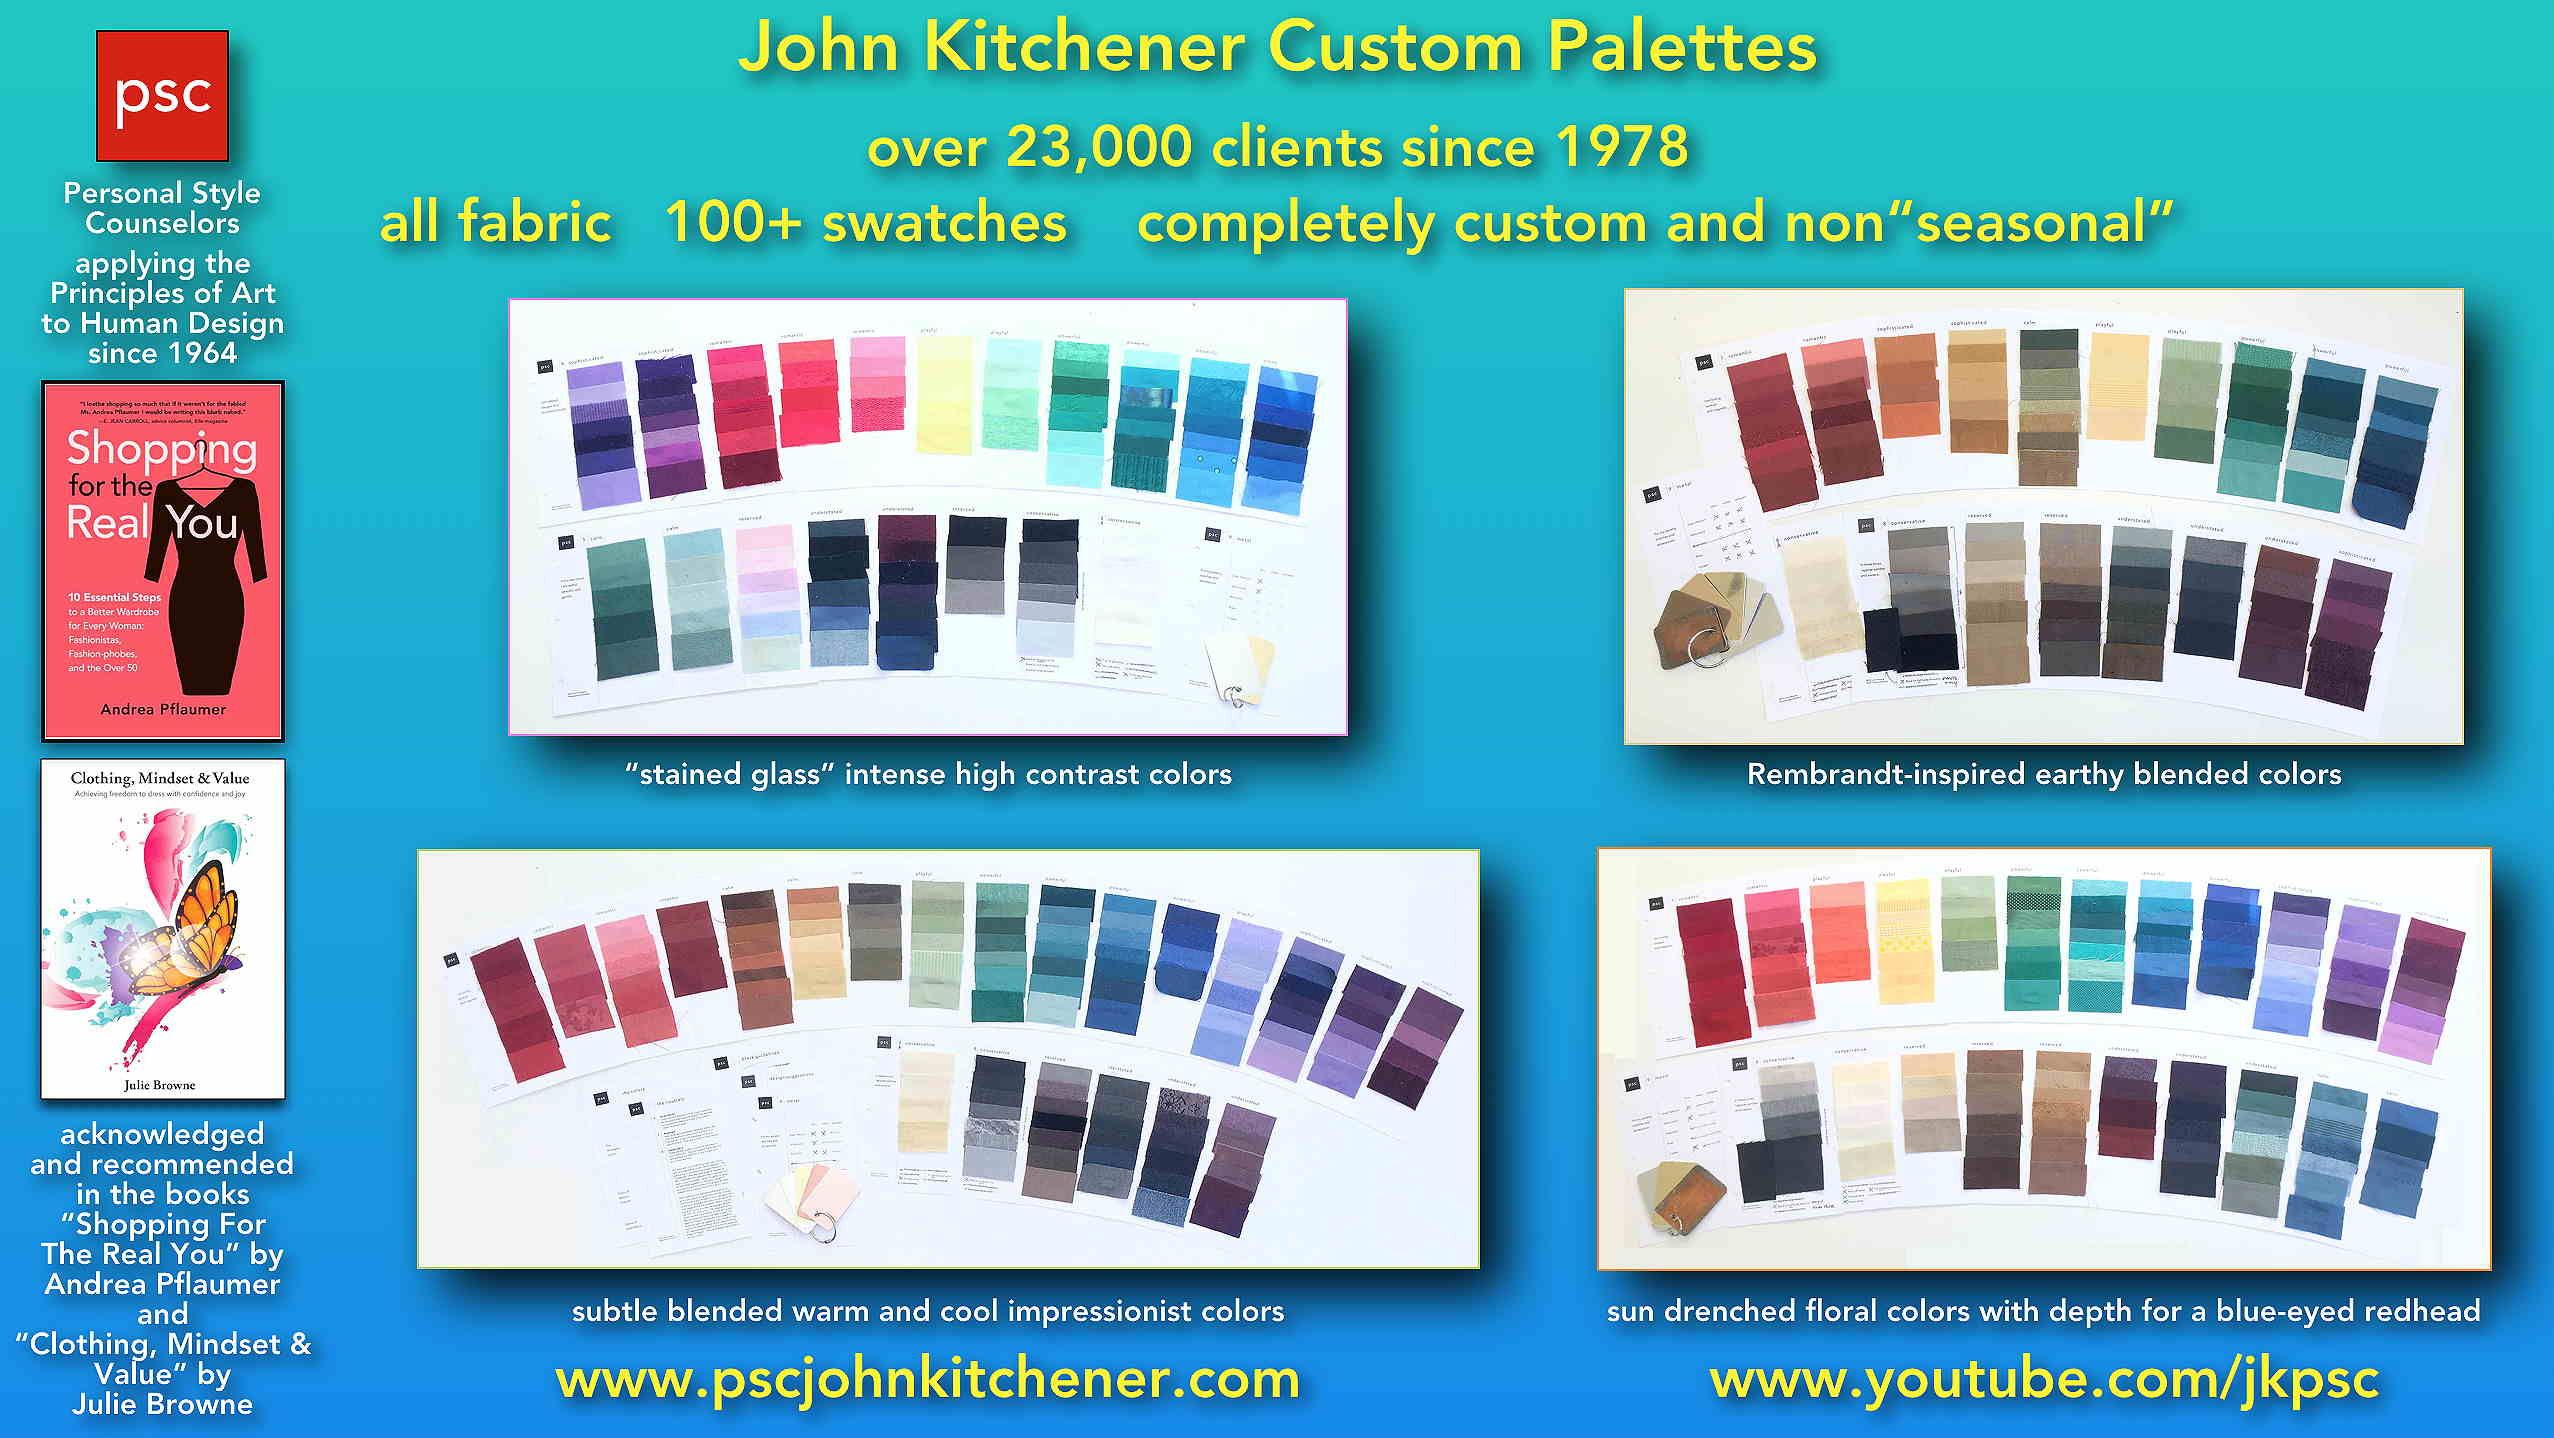 From John Kitchener: here are a few examples of the custom palette ...